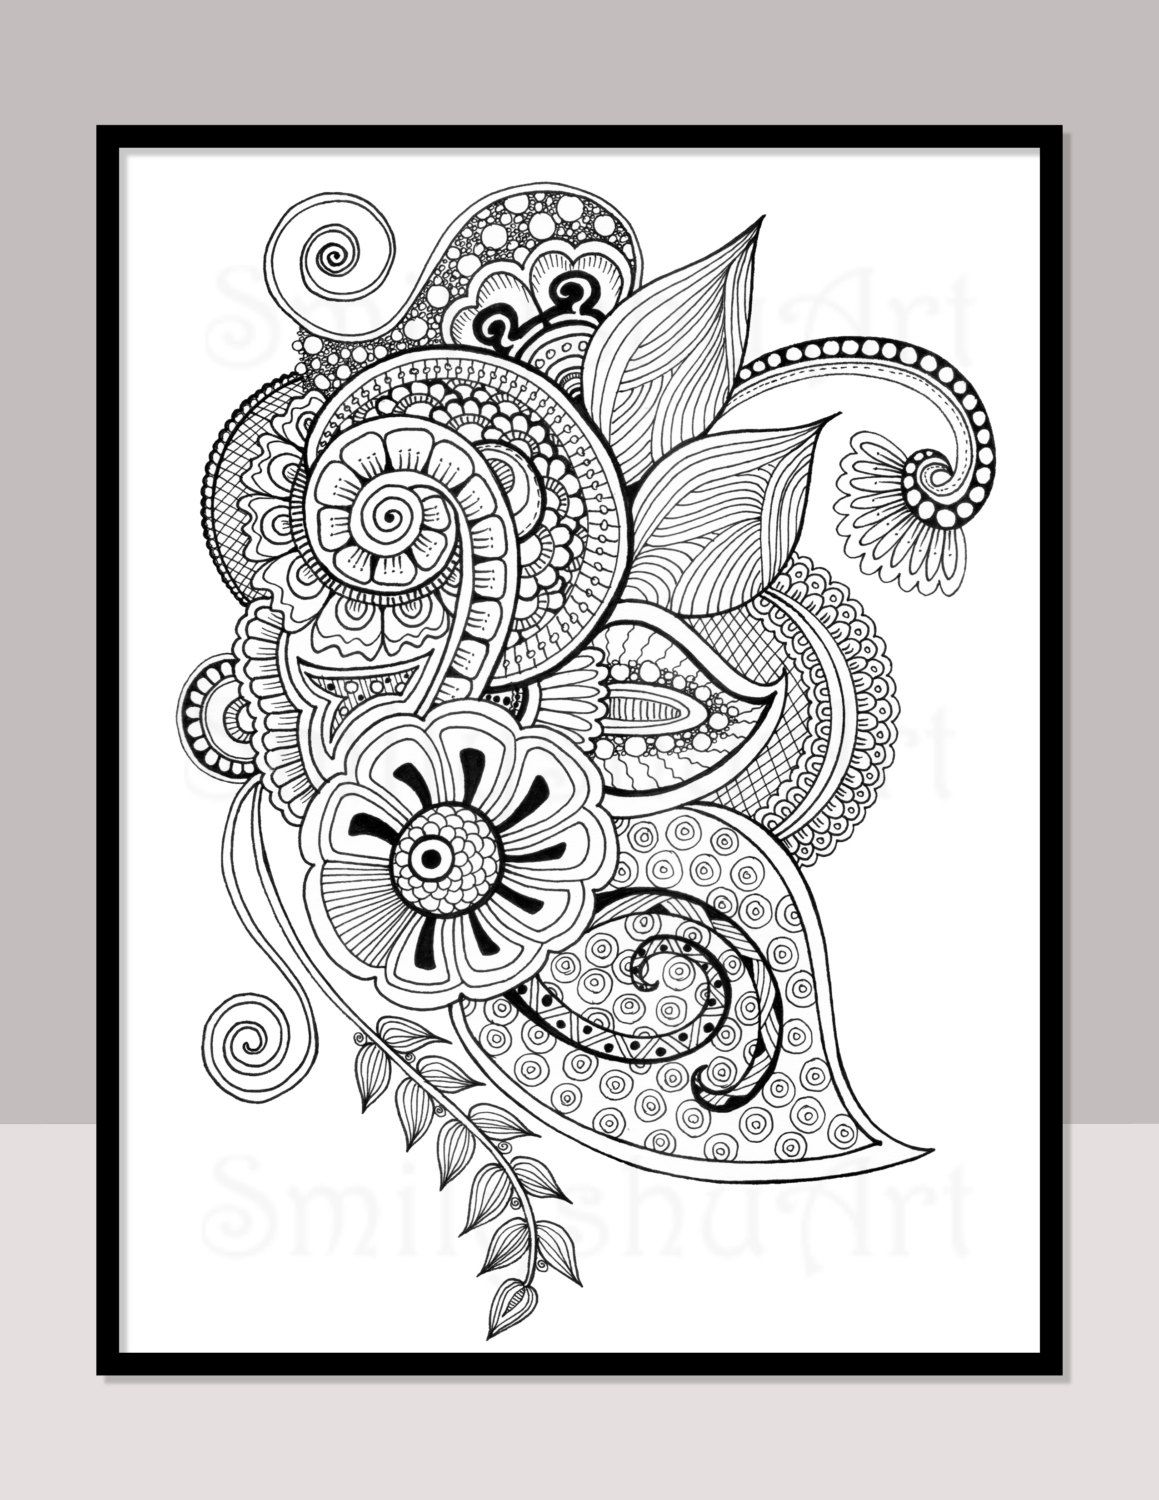 Printable Coloring Page, Use as Invitations Greeting cards Thank ...